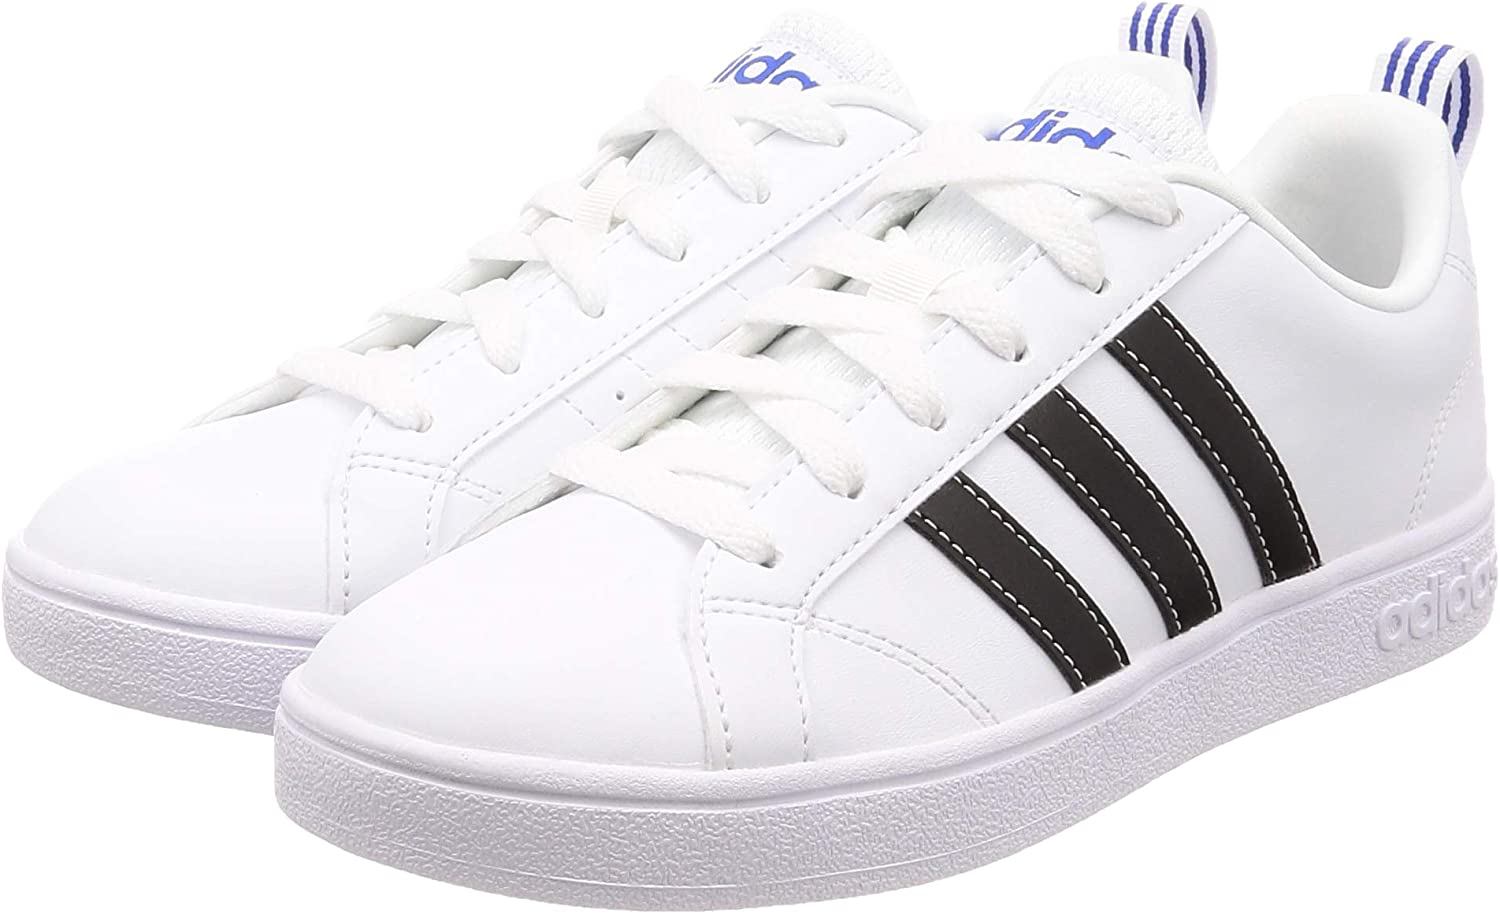 adidas Unisex Adults Fitness Shoes, 7.5 US